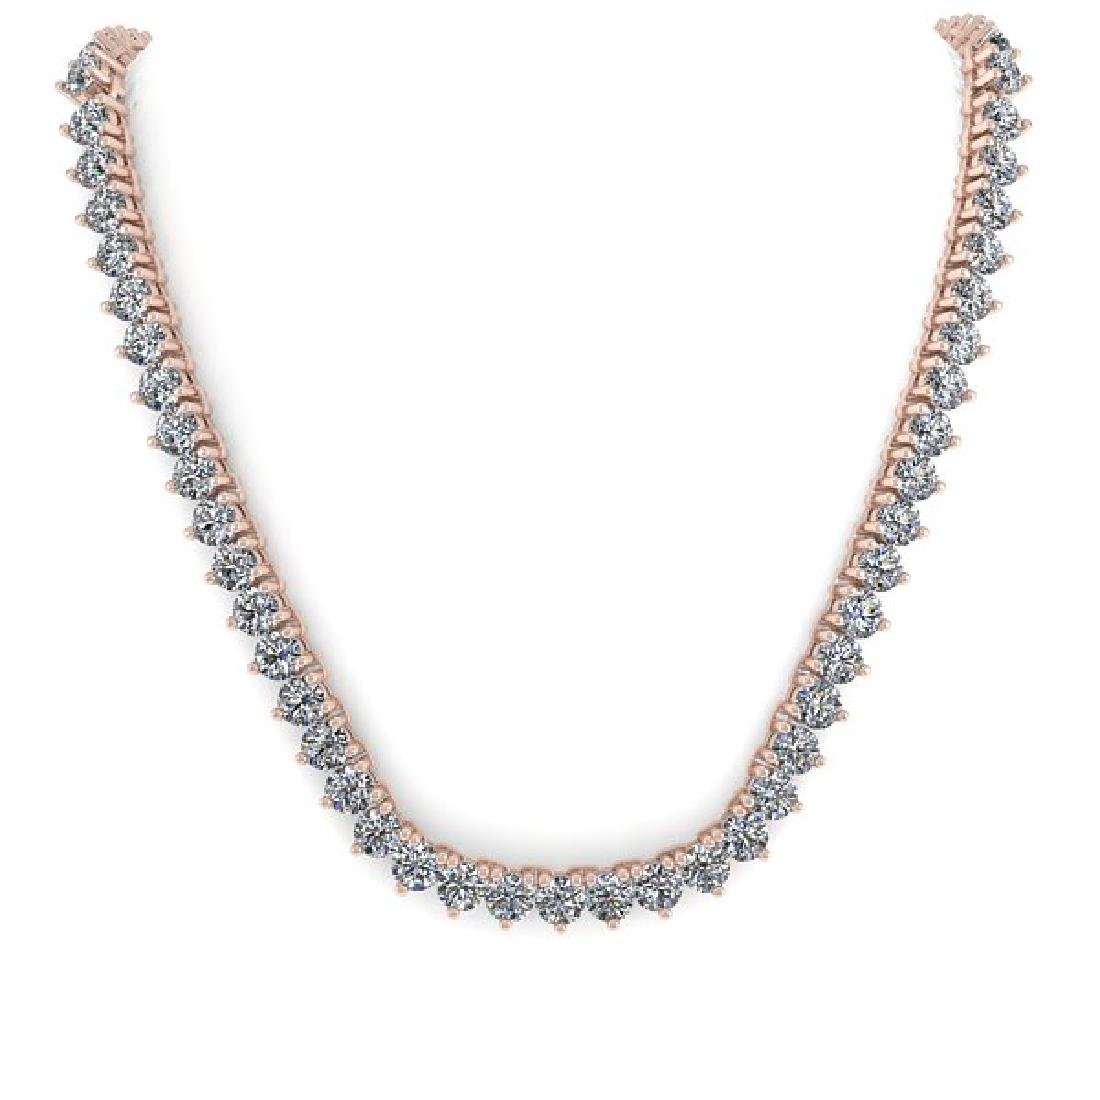 48 CTW Solitaire SI Diamond Necklace 18K Rose Gold - 3